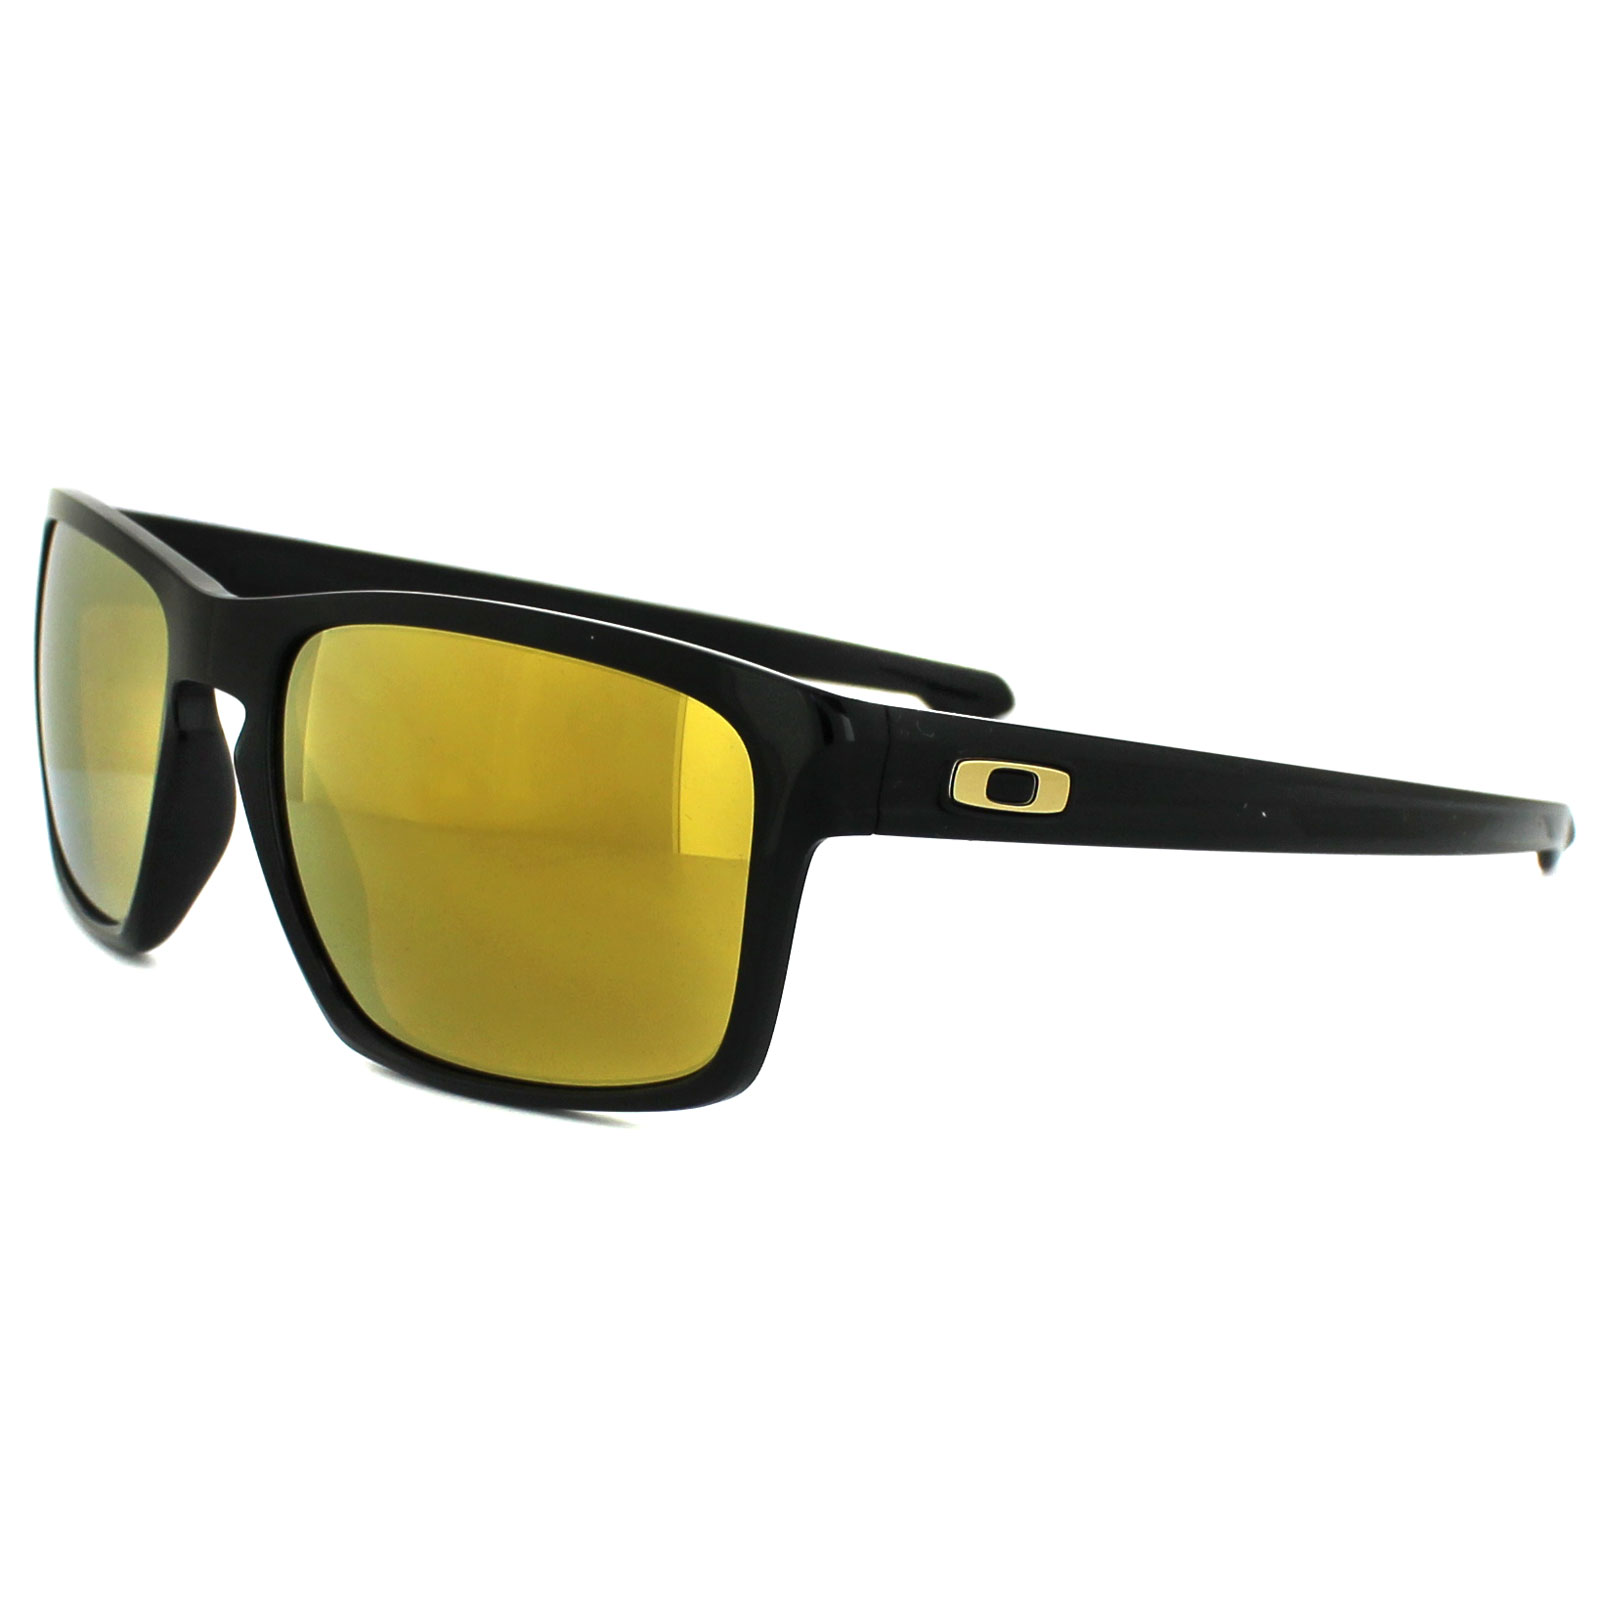 Cheap Oakley Sliver Sunglasses